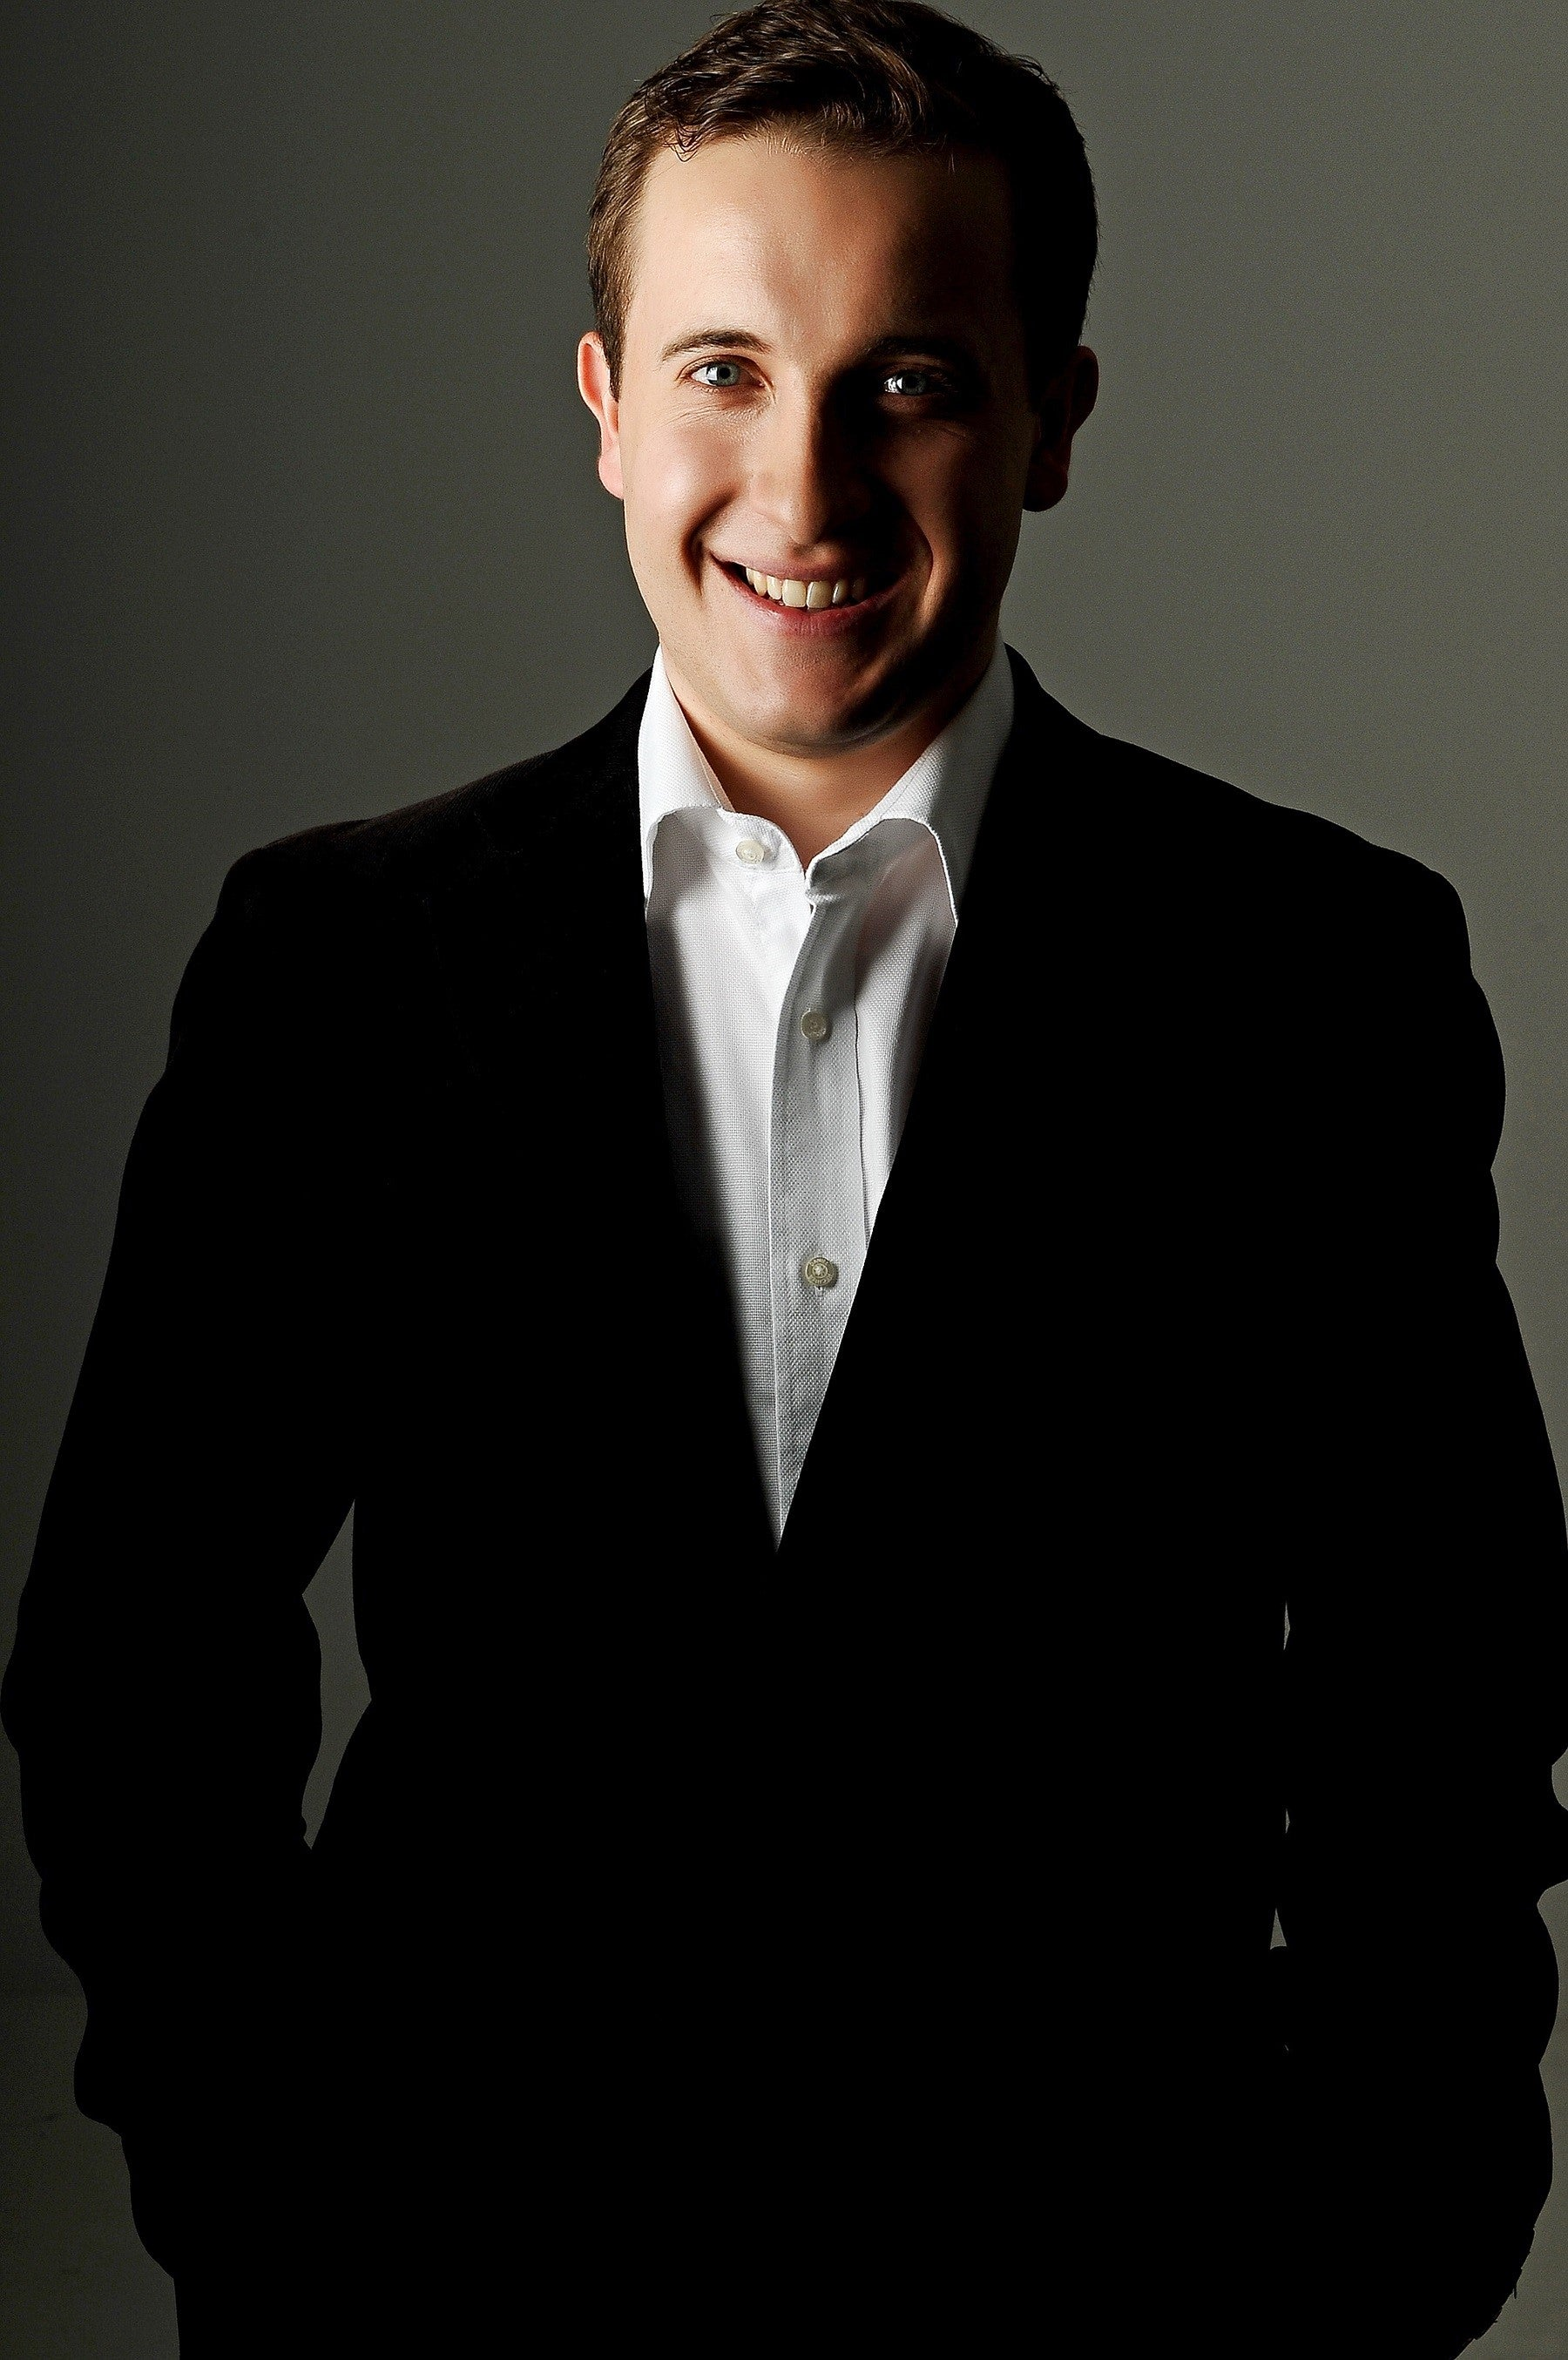 Classical Music Concert: 13 April 2019: Easter at La Motte with Ben Schoeman (piano)